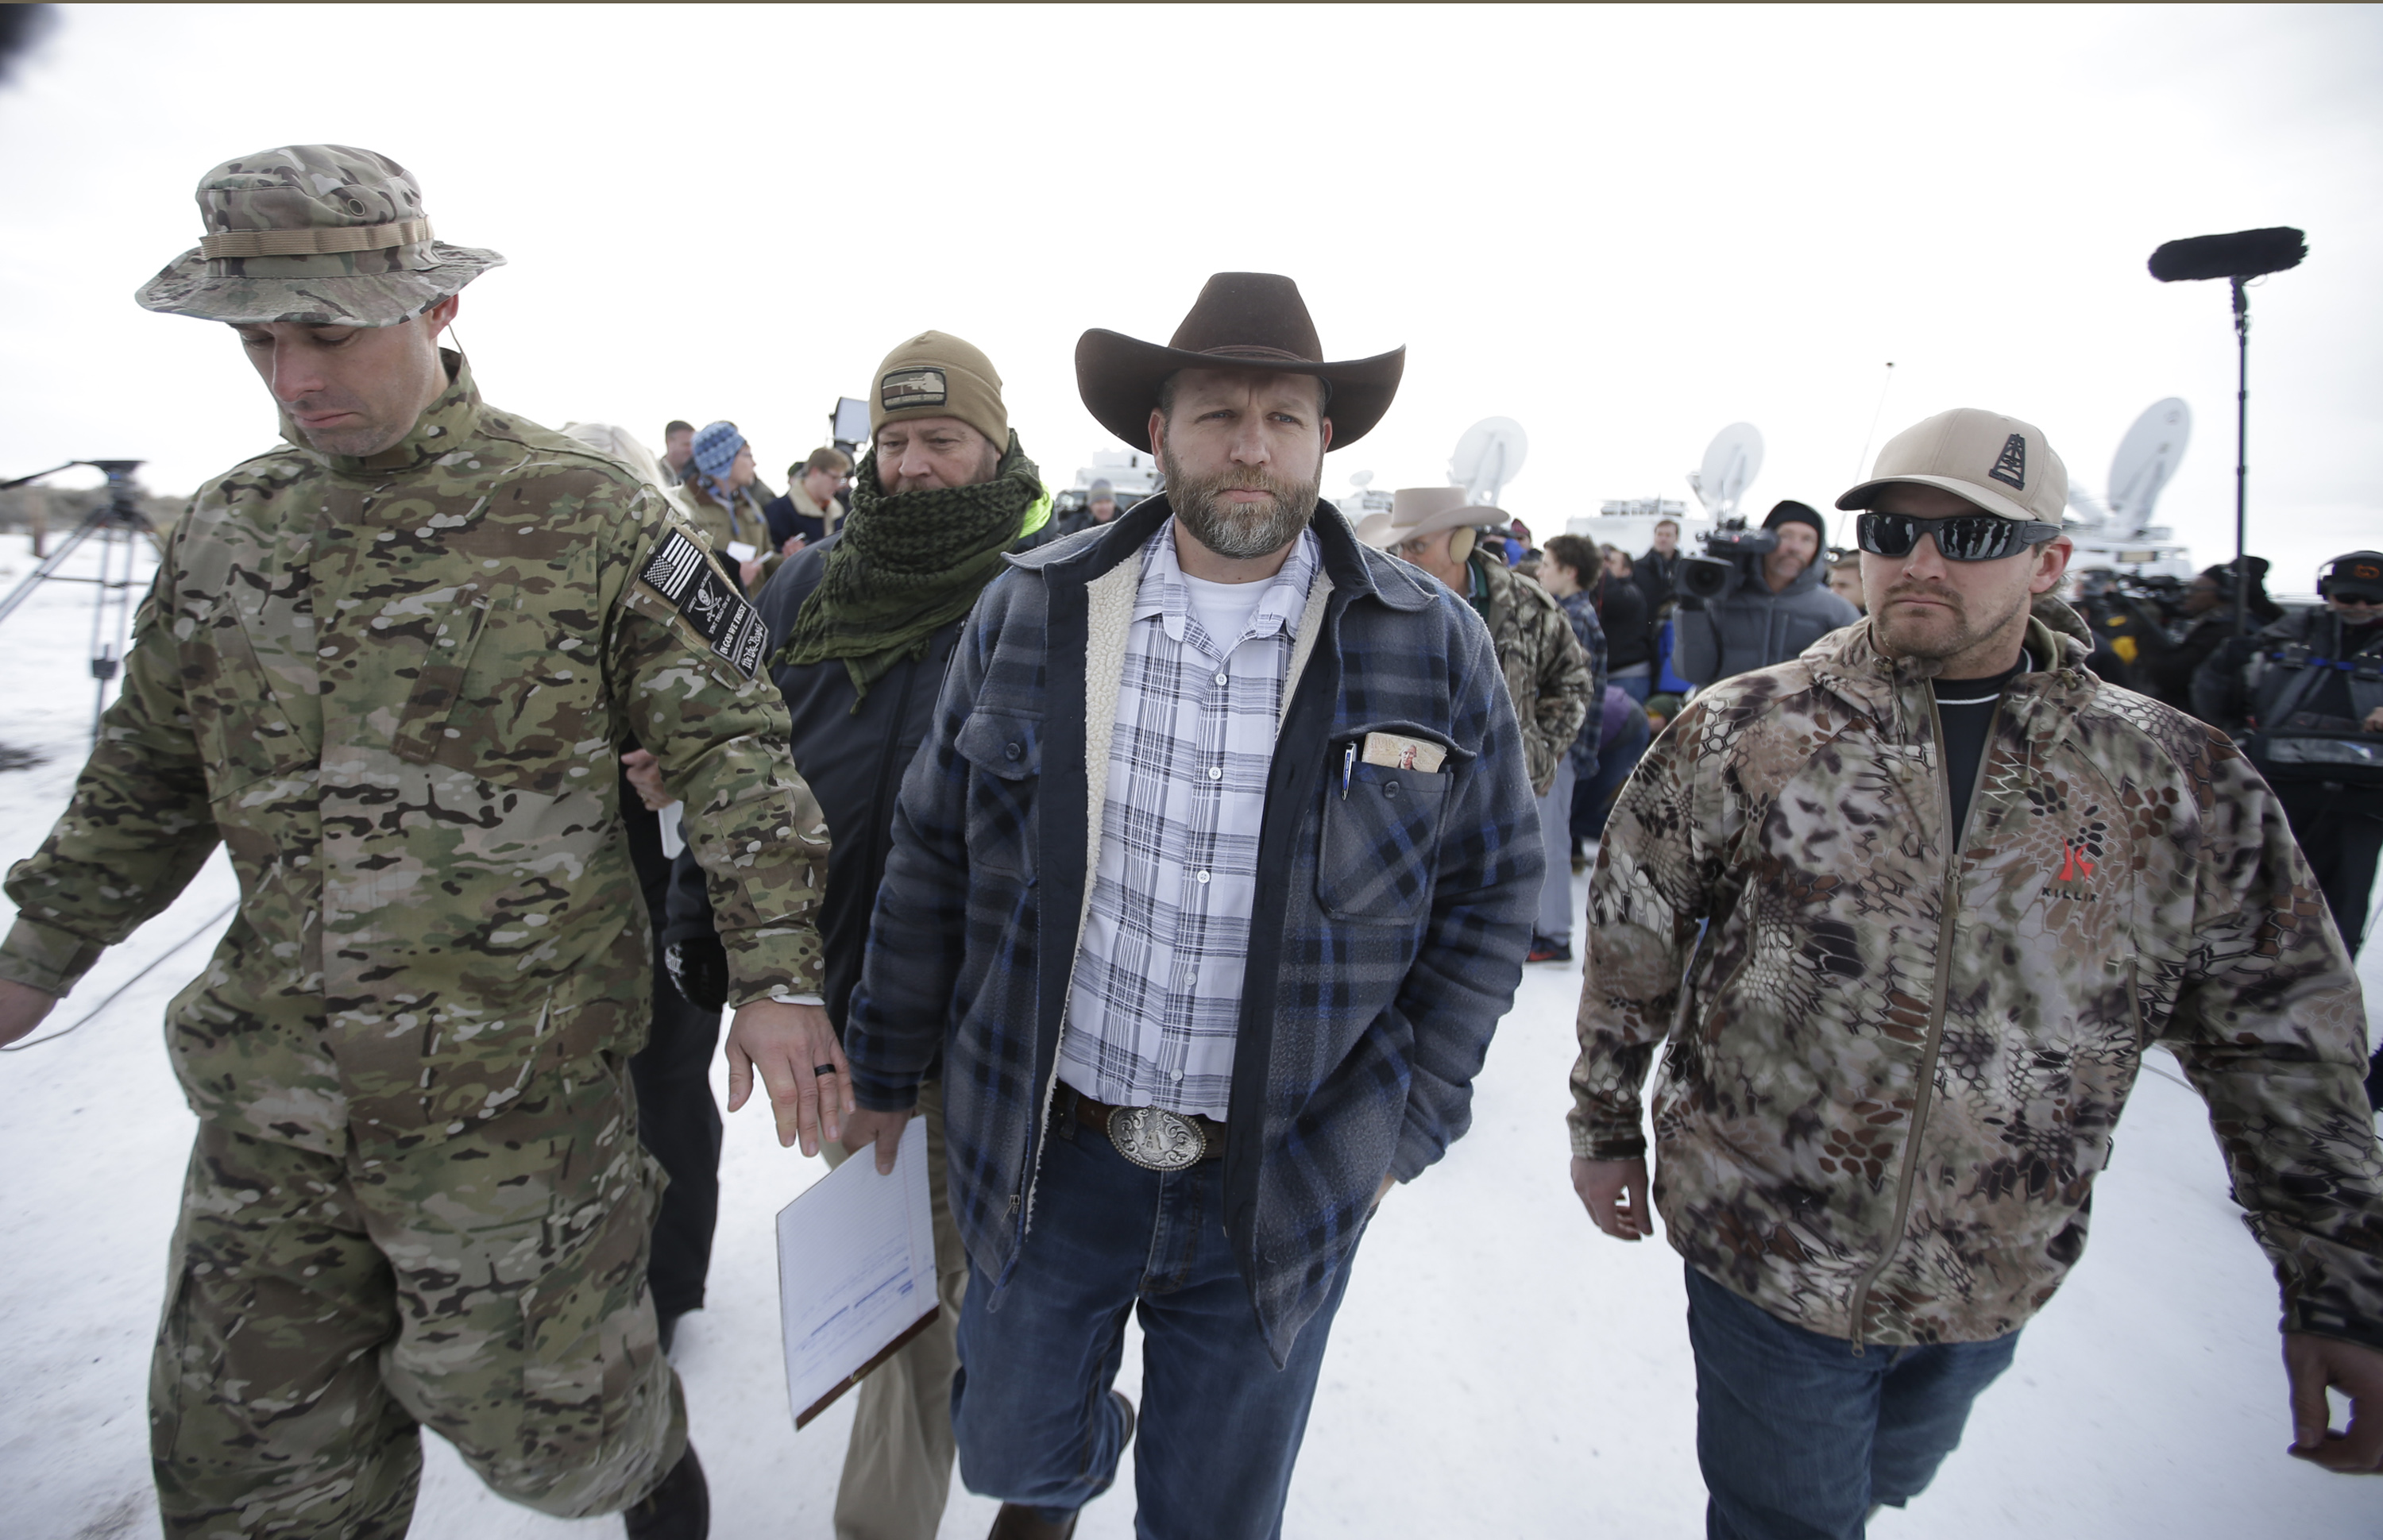 Malheur Occupation in Oregon: Whose Land Is It Really?